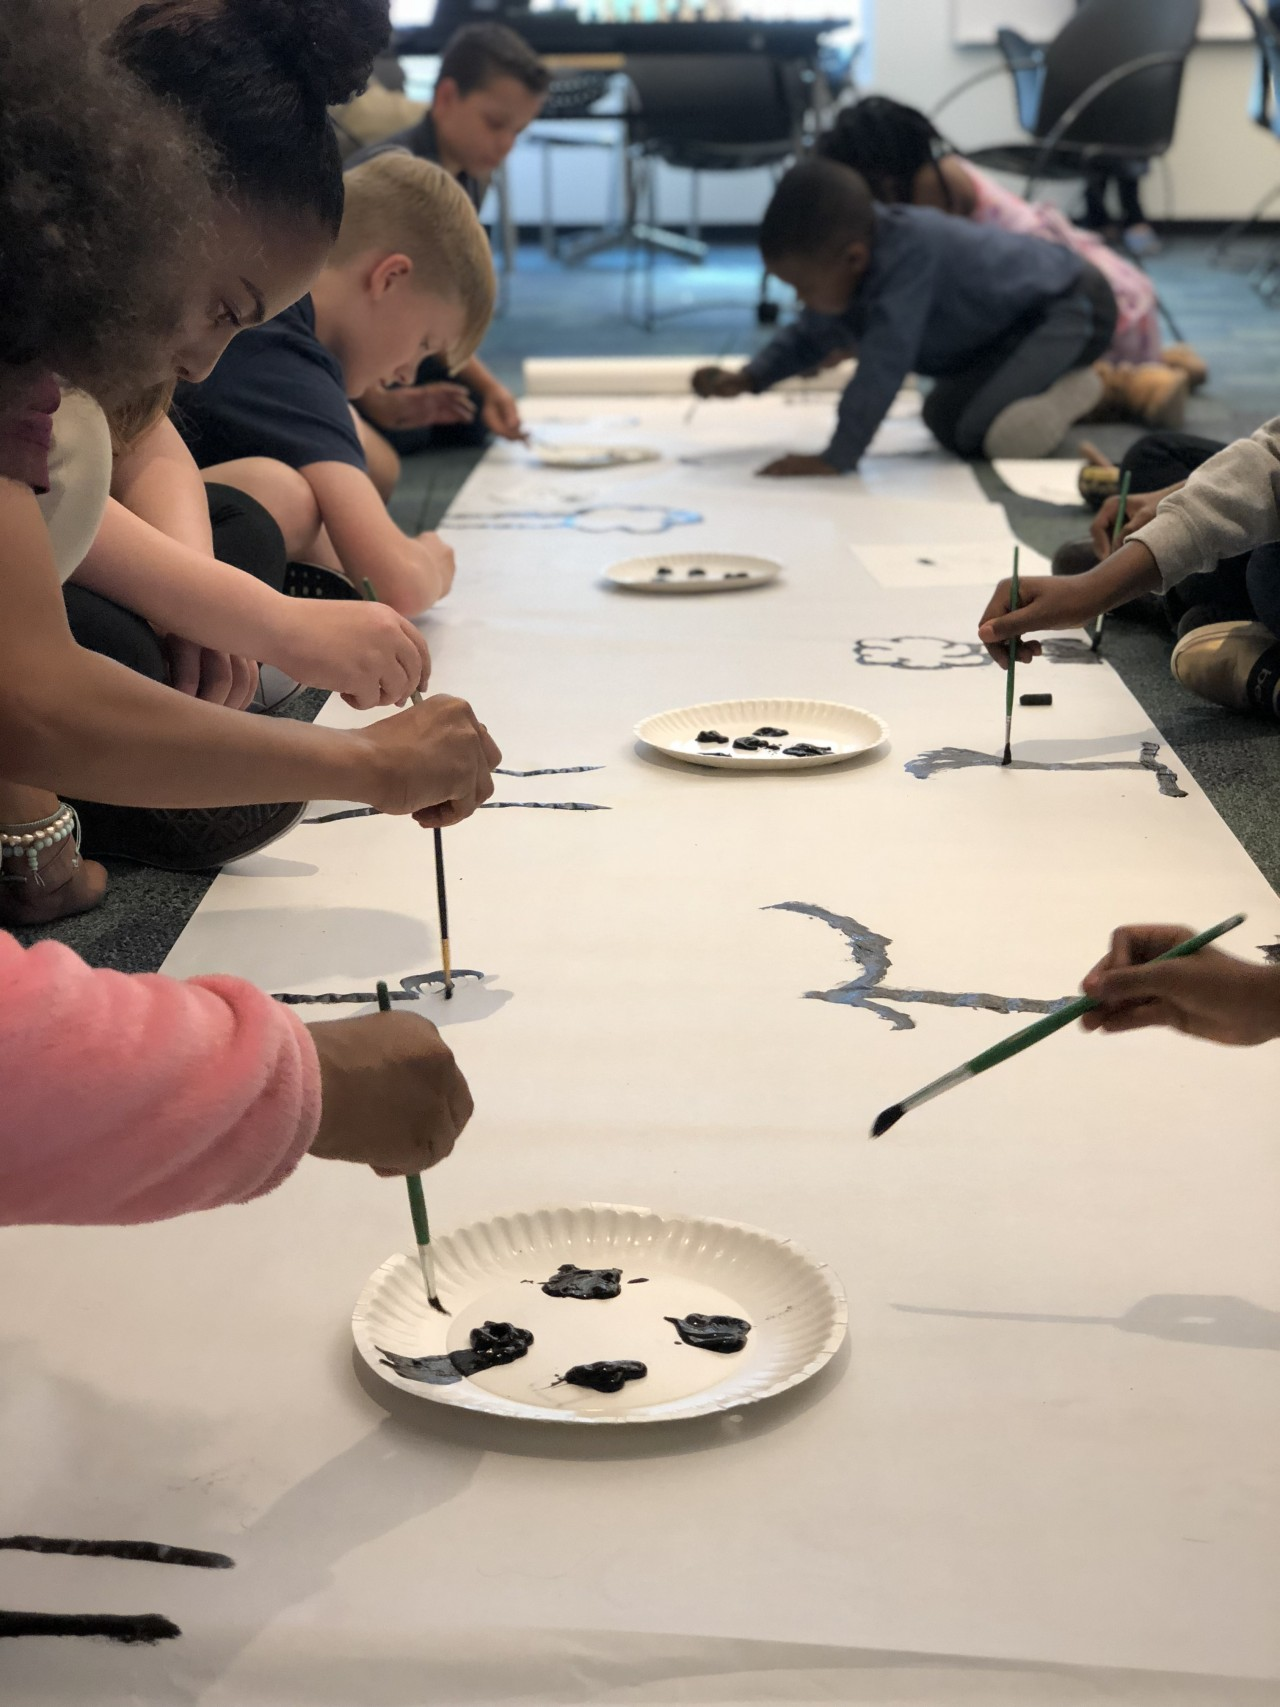 Bilingual arts and crafts classes are offered for babies, young children, and their parents in the Denver Public Library.